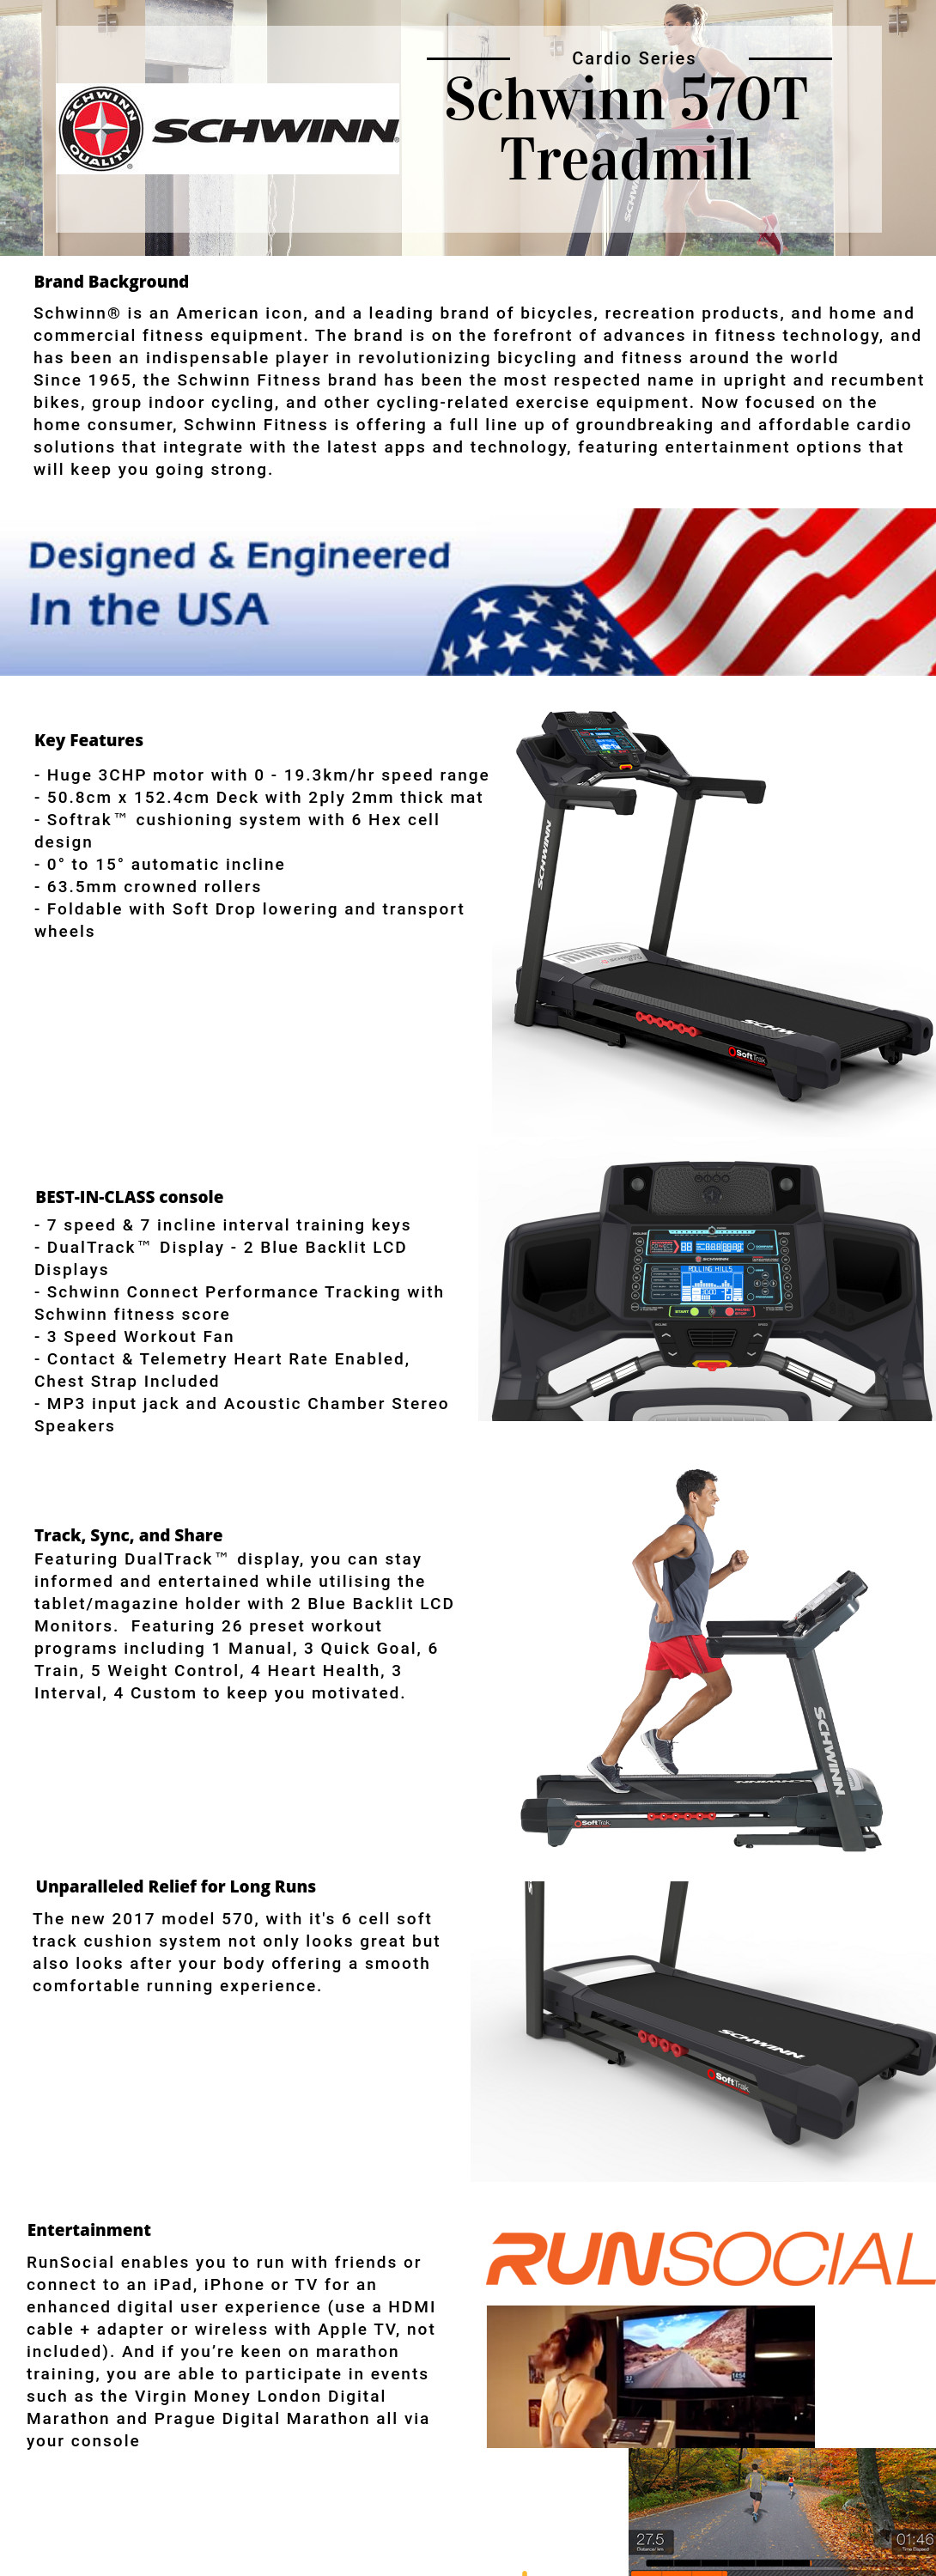 Schwinn 570t Treadmill Gymsportz Fitness 50cc Wiring Diagram Try Watching This Video On Youtubecom Or Enable Javascript If It Is Disabled In Your Browser